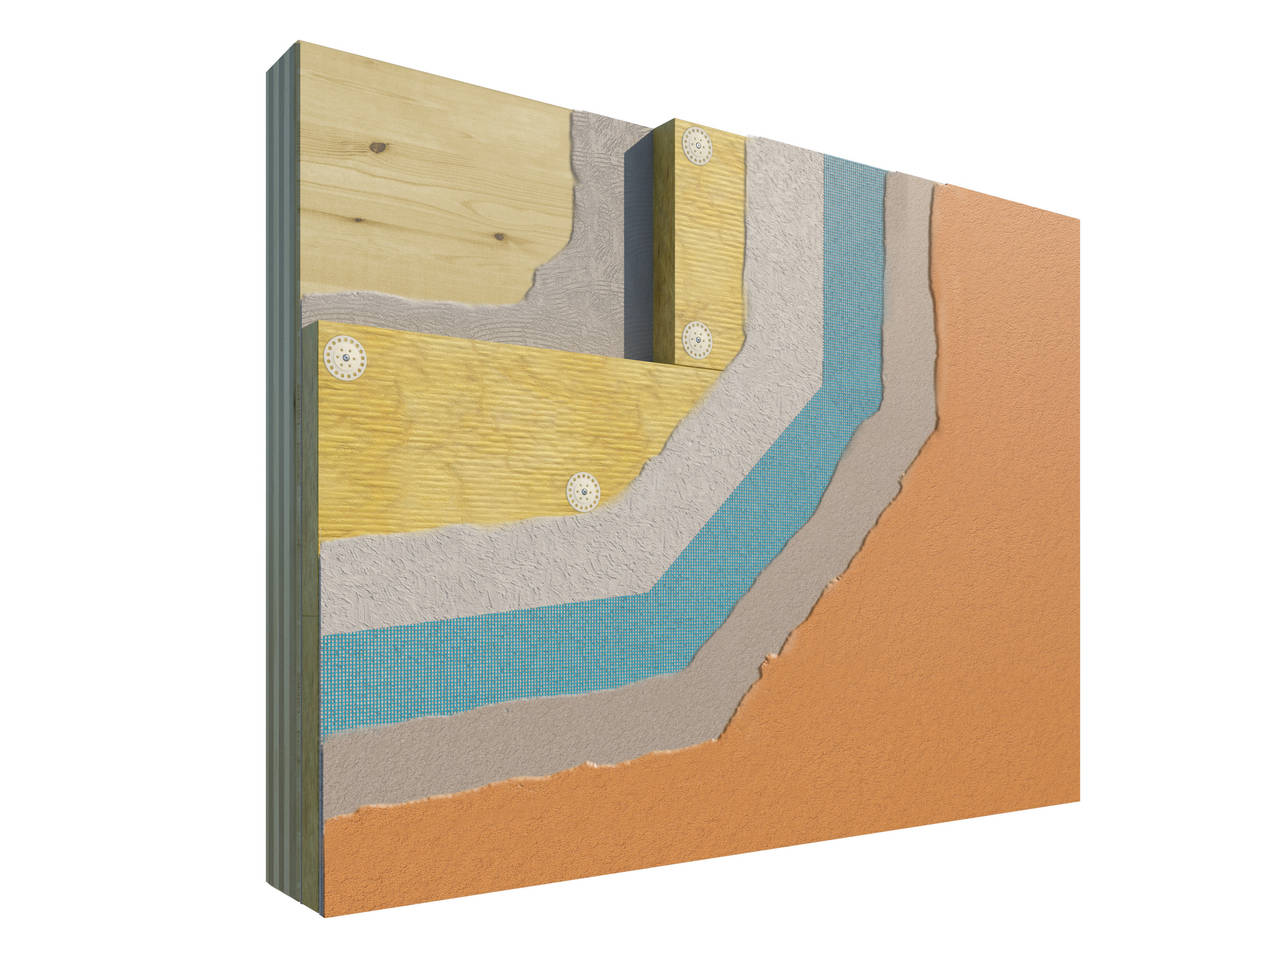 Wood Smart by Knauf